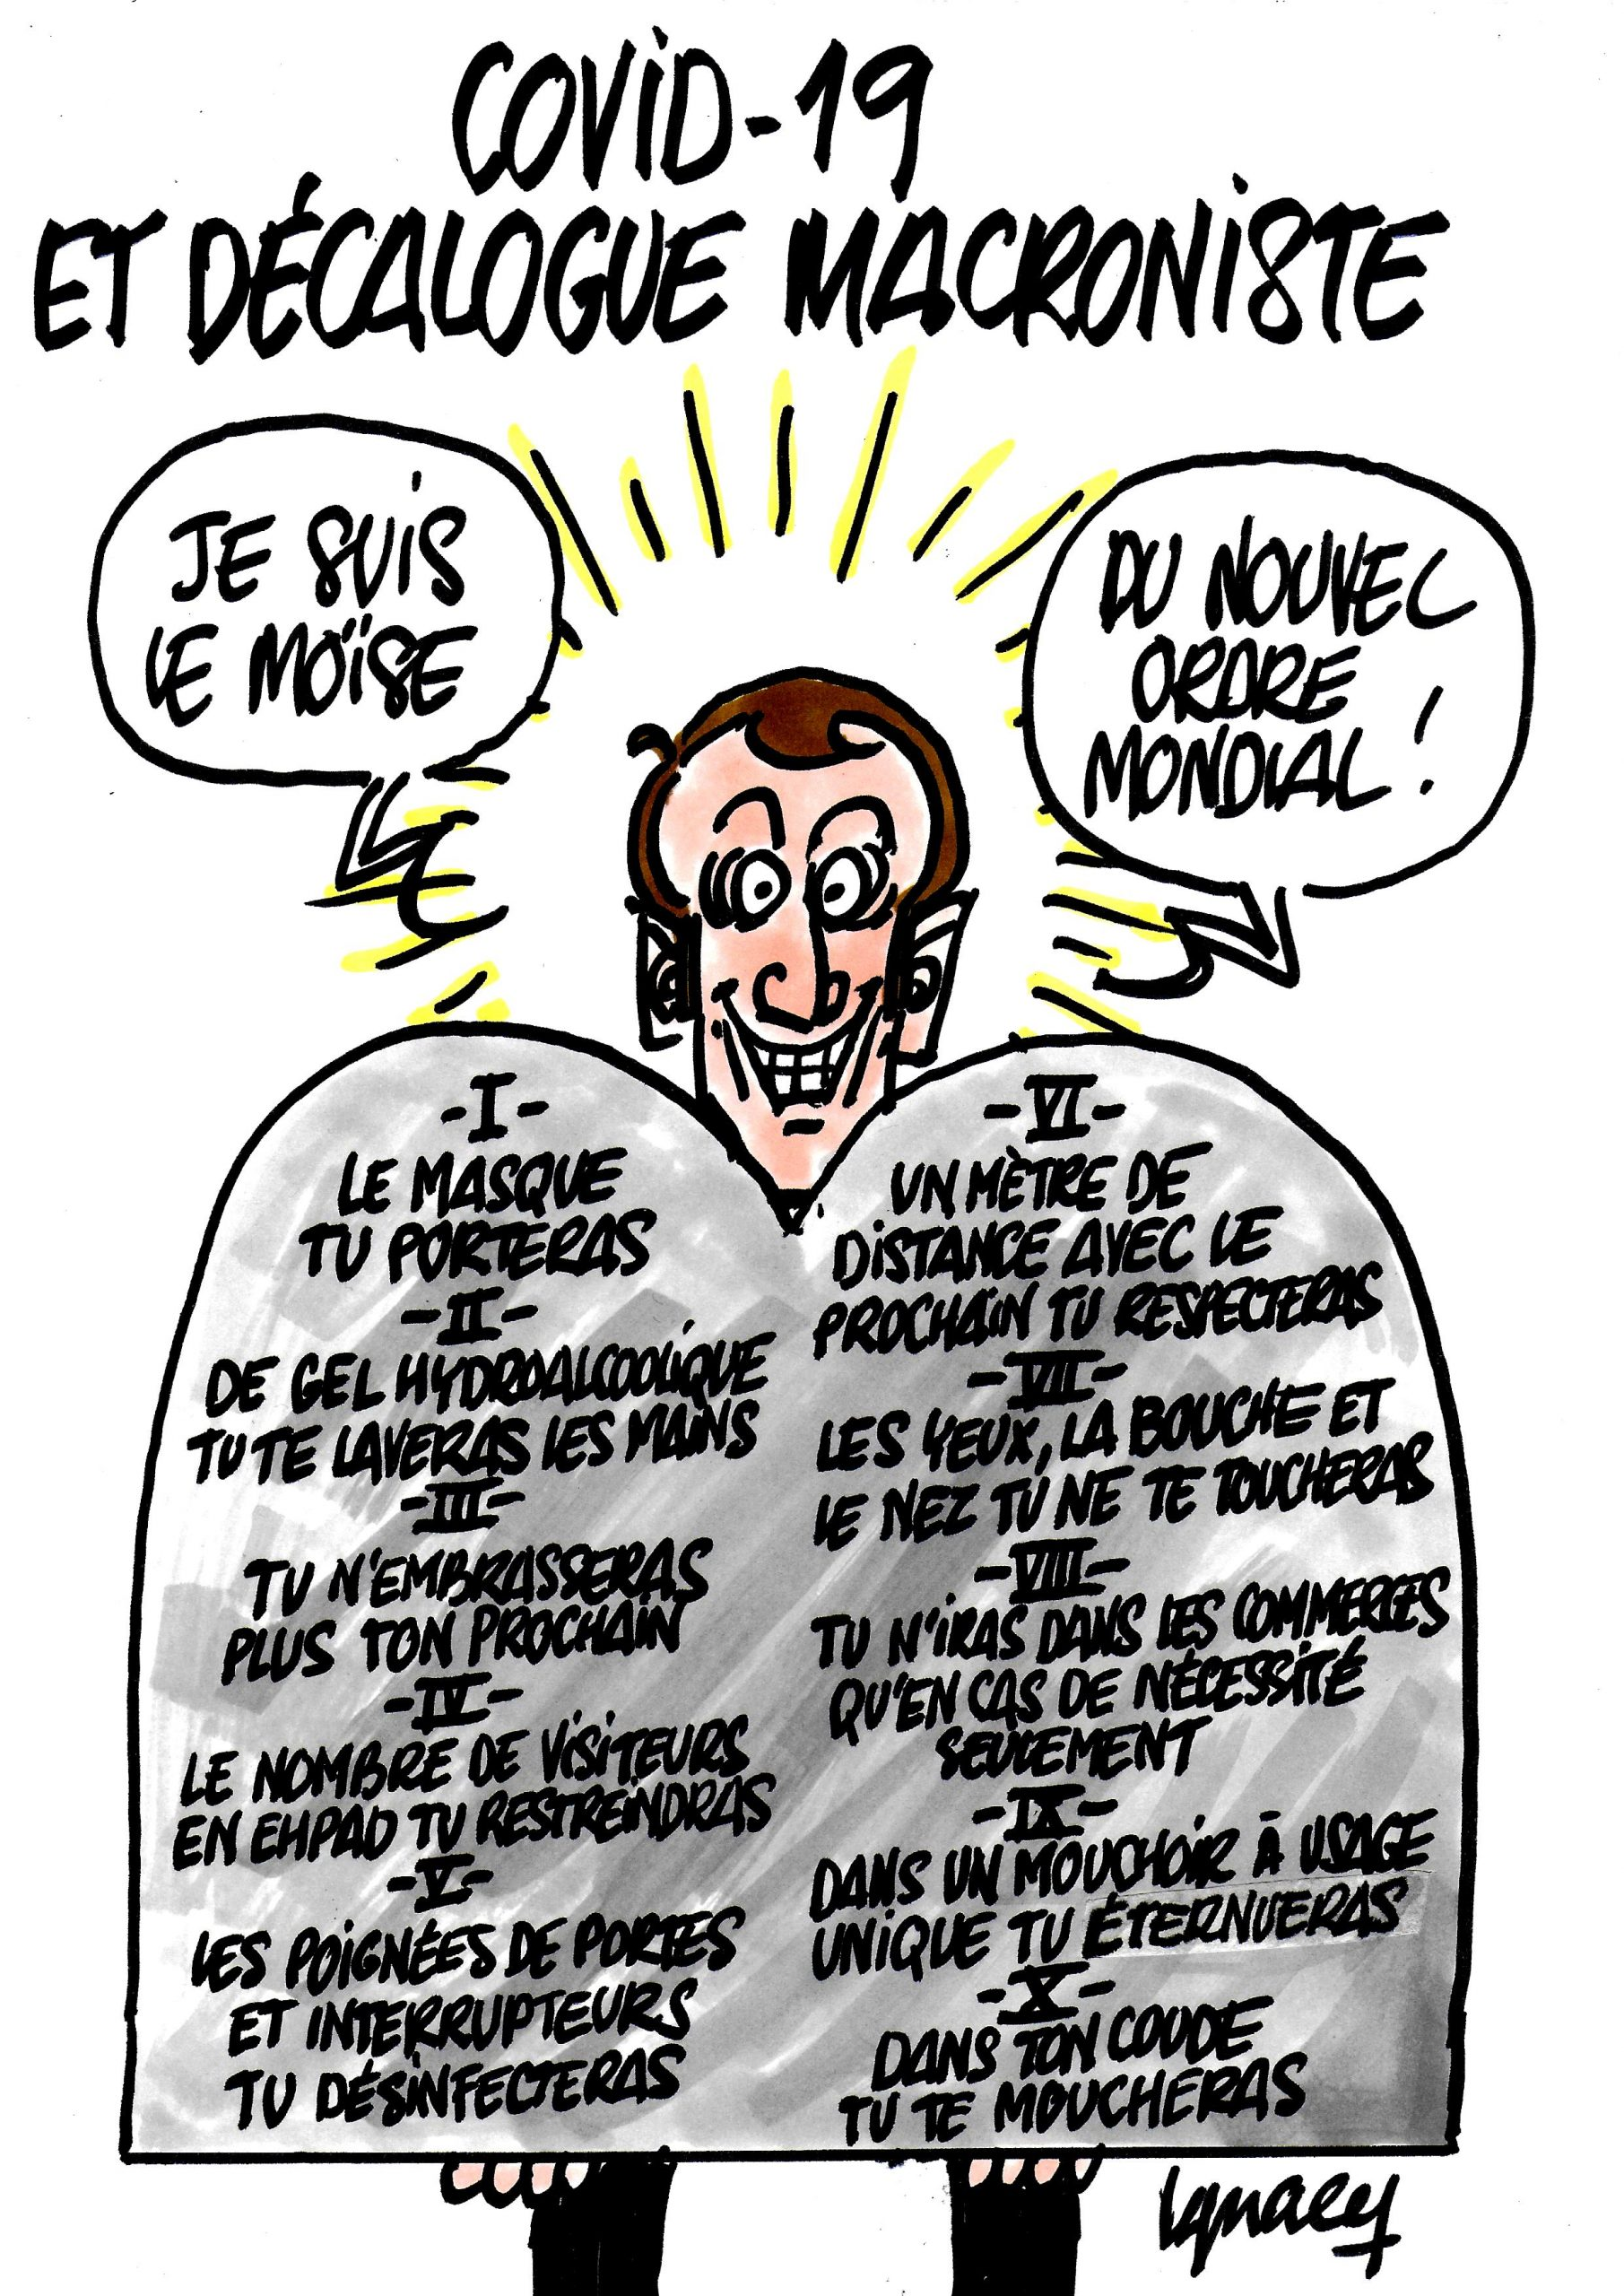 Ignace - Décalogue macroniste